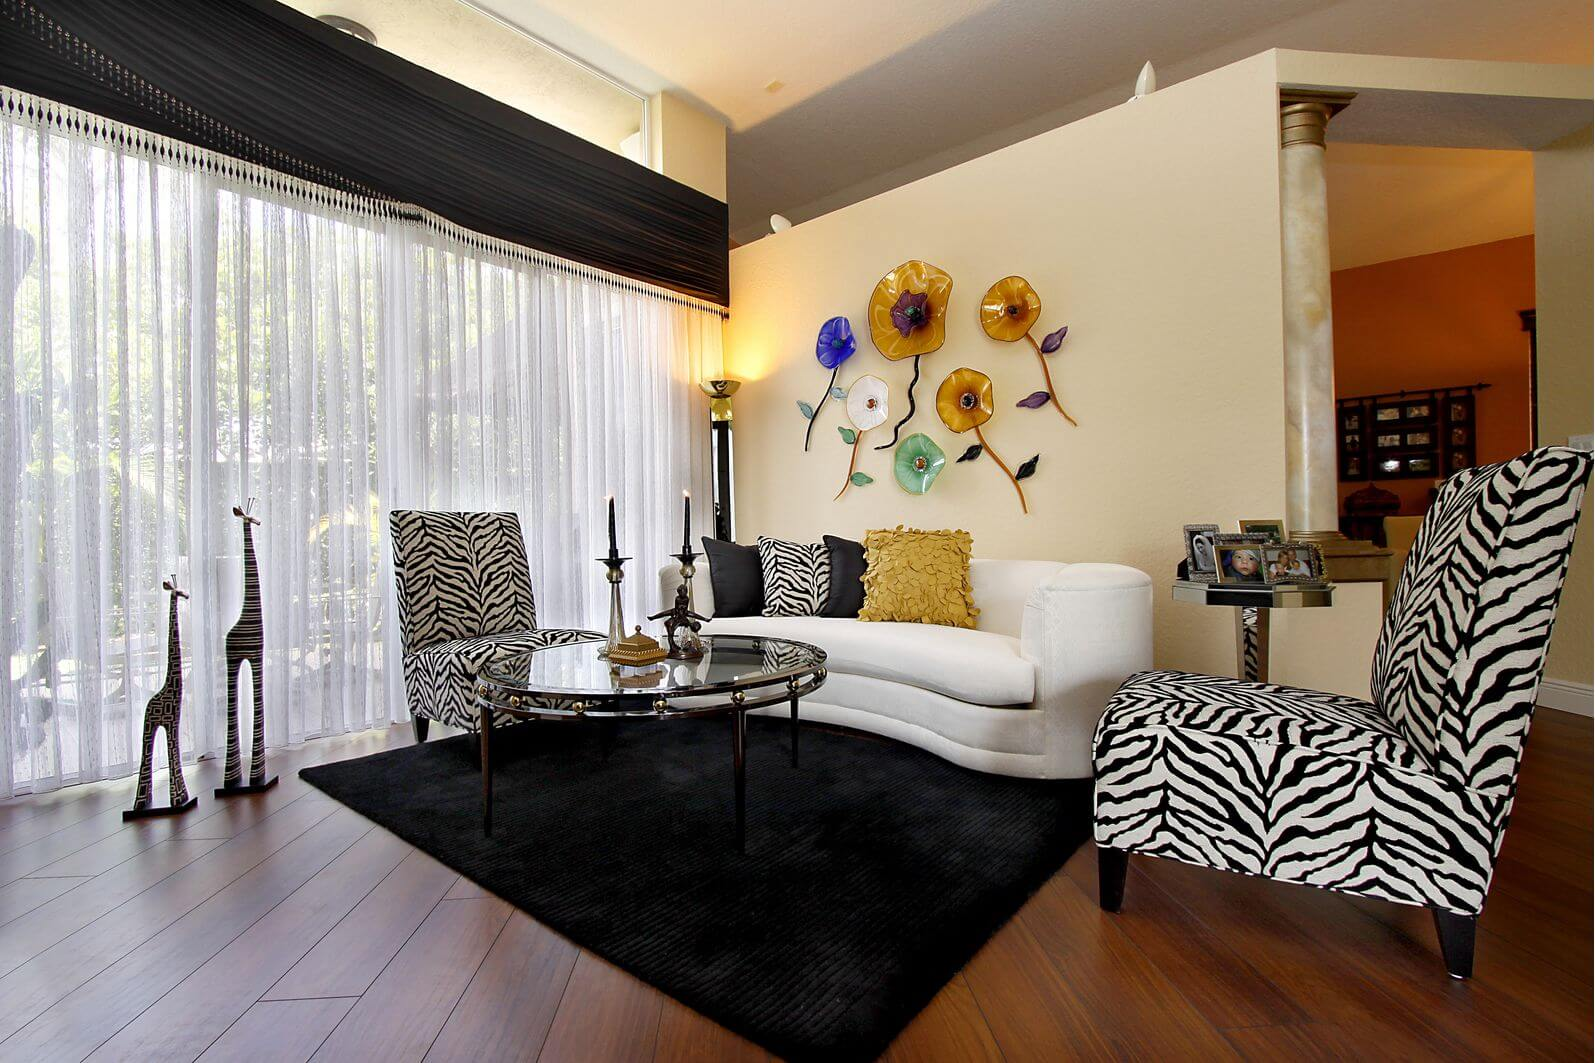 Lovely Small Living Room With 2 Zebra Print Armless Chairs, One Small White Sofa,  Glass Part 30